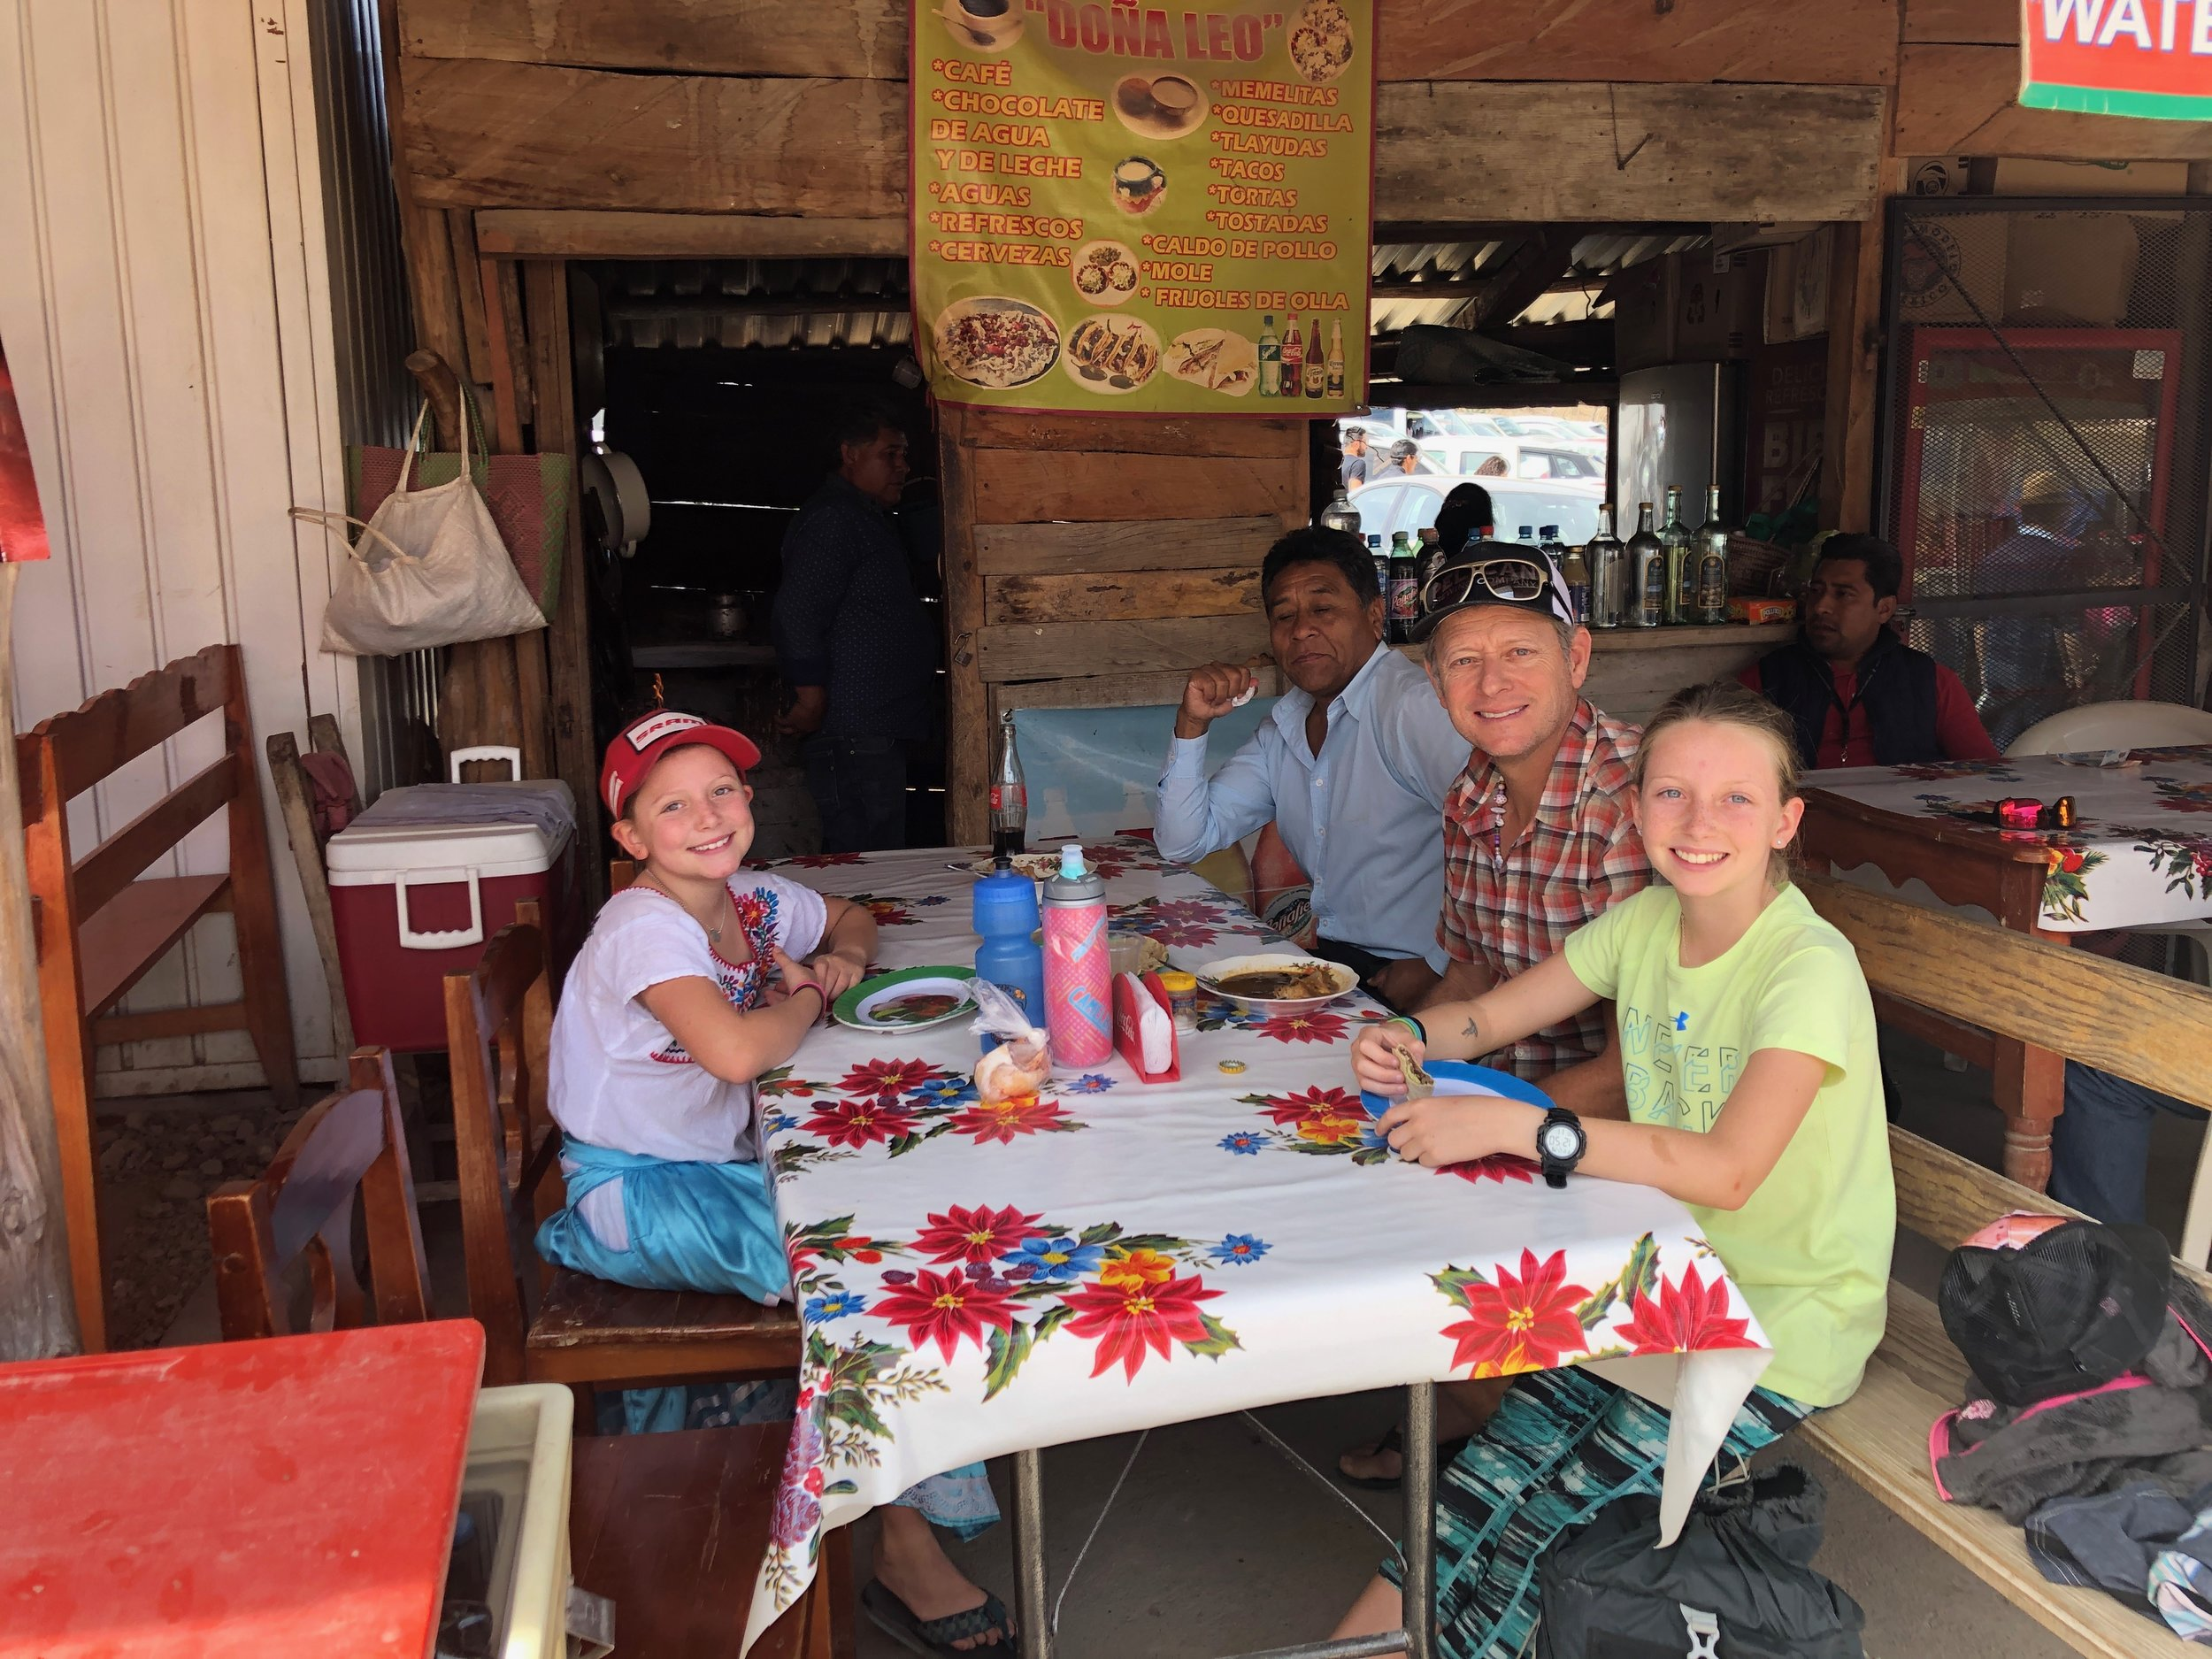 """I think we had the most delicious food of the entire trip at this place! John's """"puerco frito con salsa"""" was delicious!"""